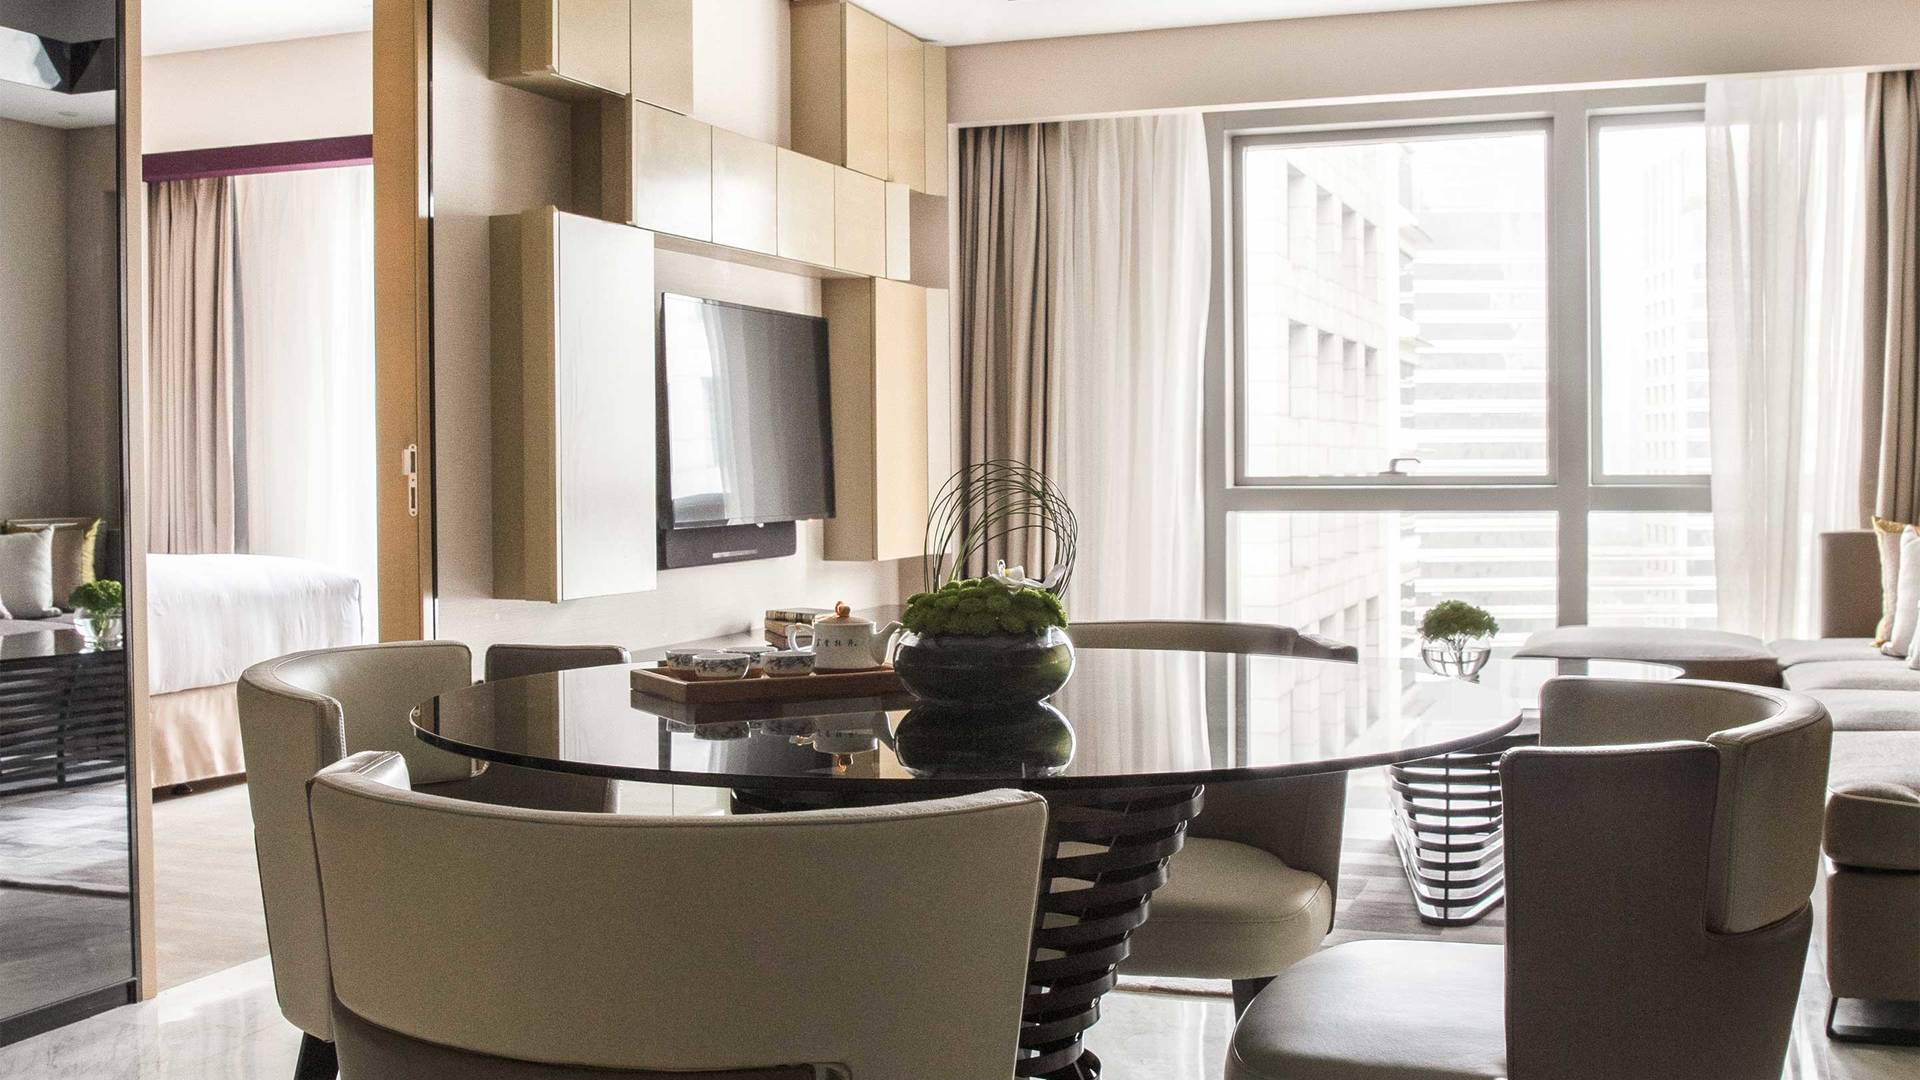 16-9 JUMEIRAH LIVING GUANGZHOU Deluxe Contemporary 2 bed room suite living room 02